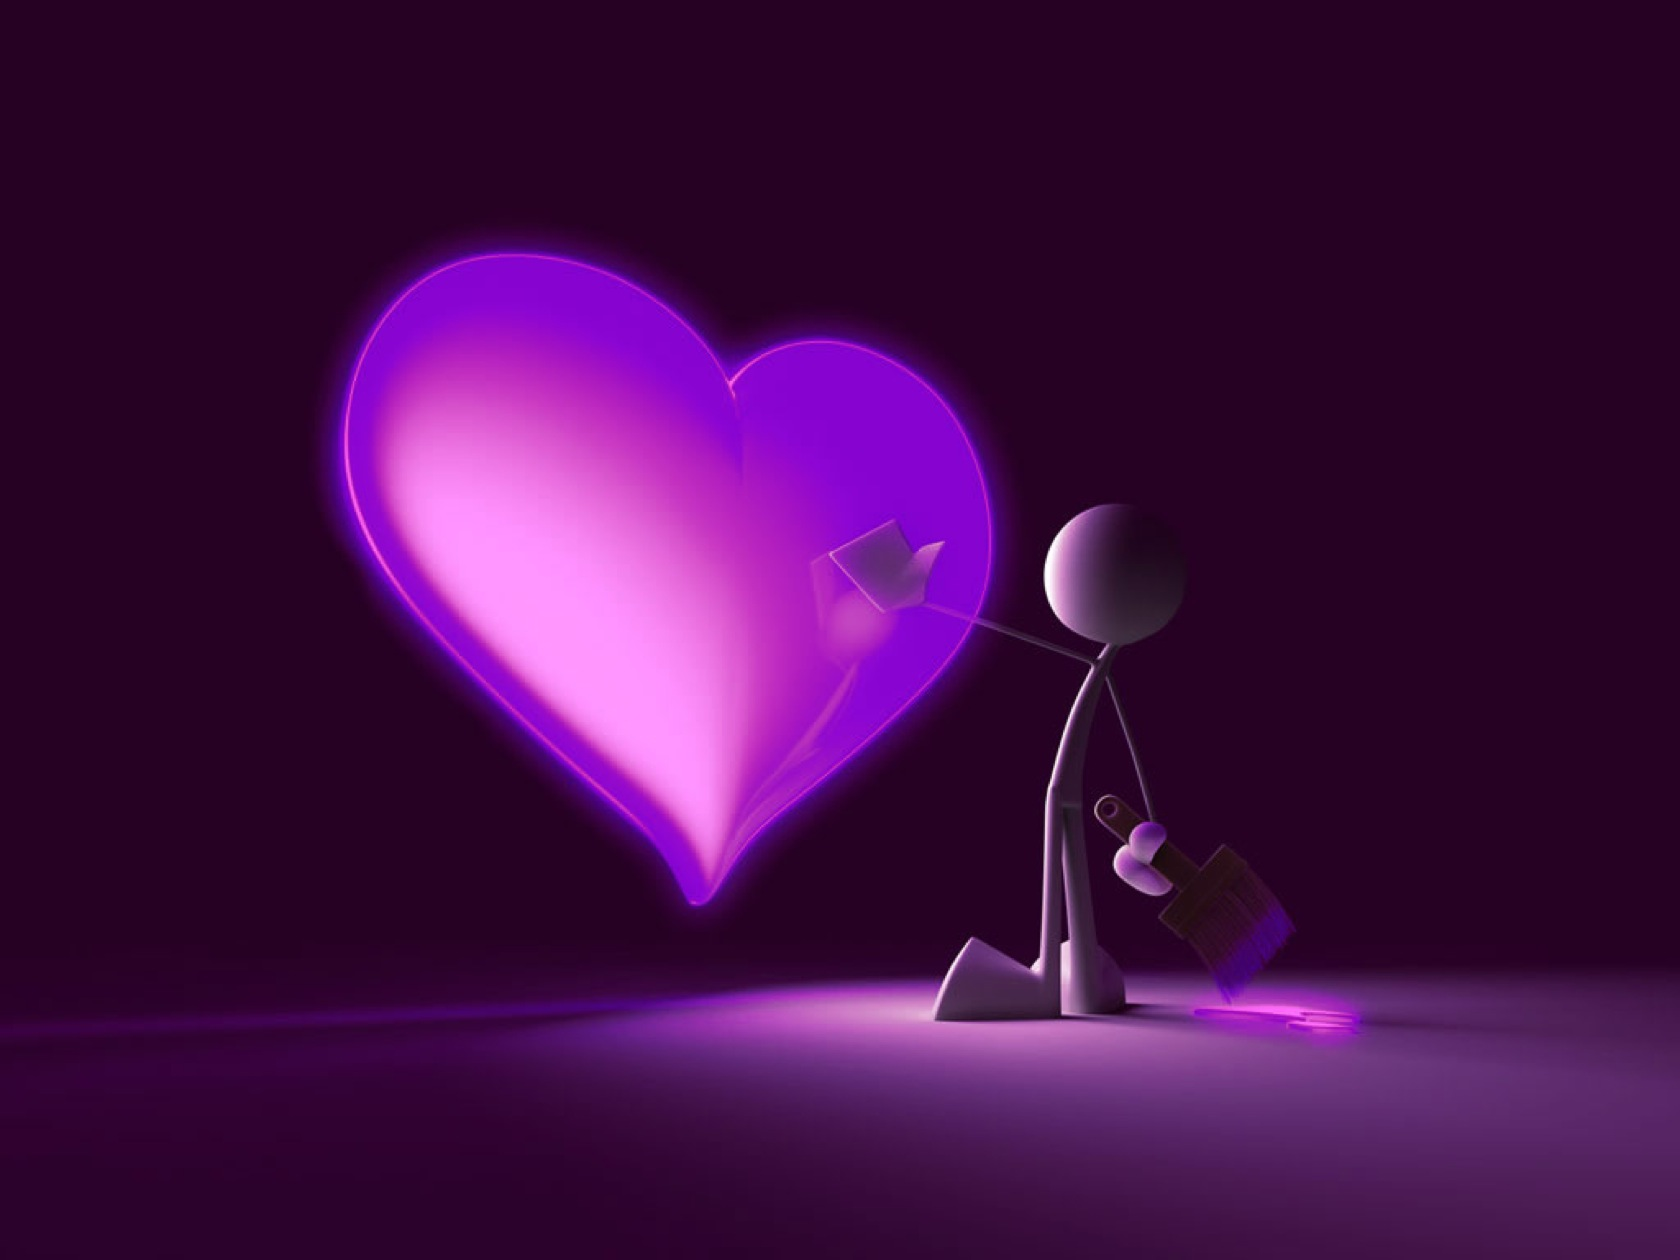 Love Wallpaper Hd For Desktop : love wallpaper purple heart - HD Desktop Wallpapers 4k HD